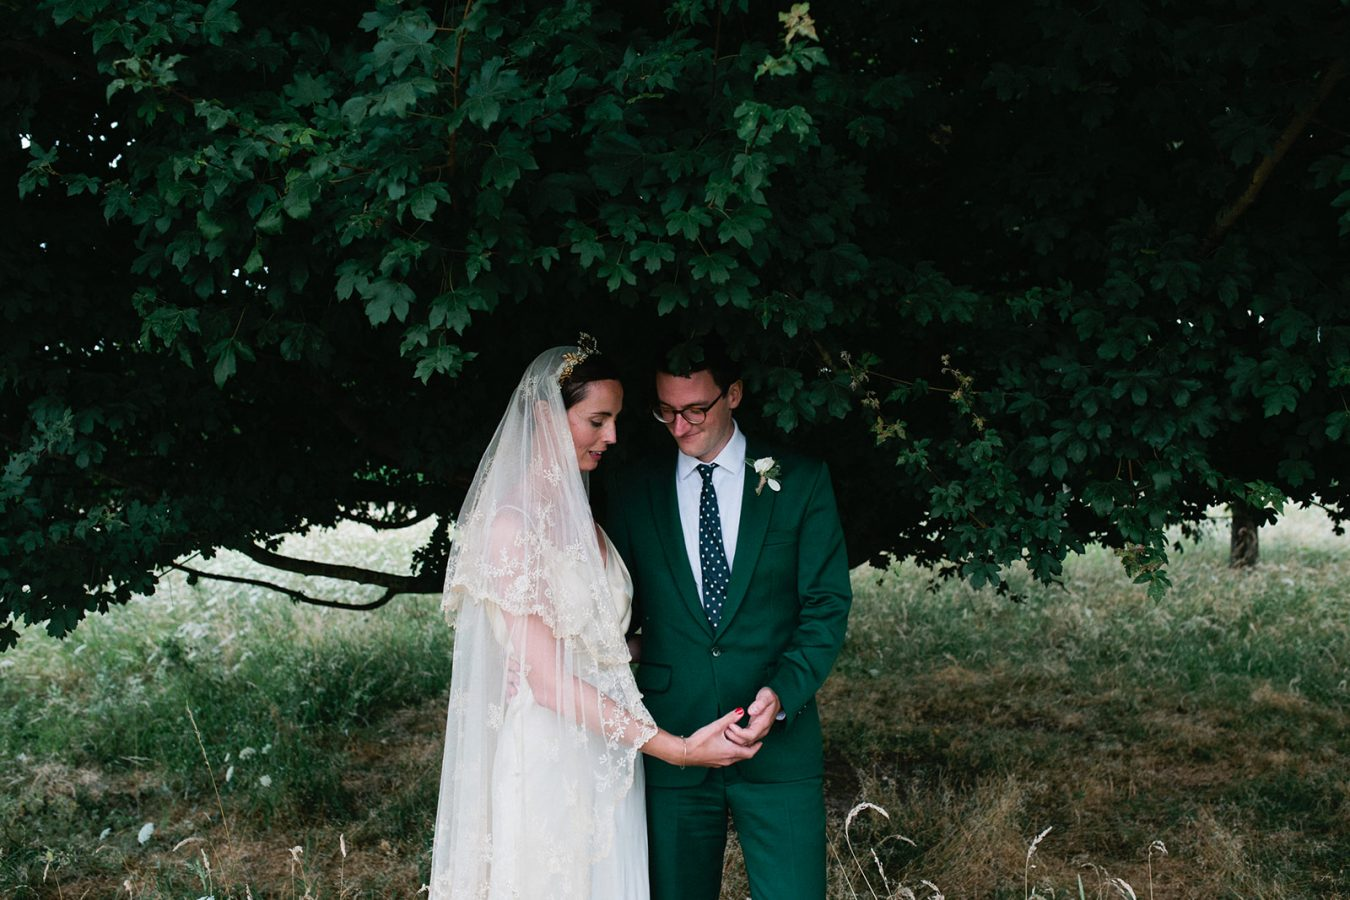 A bride and groom take time for portraits at their Canterbury Marquee Wedding on a Farm by Kent Marquee Weddings Photographer Matilda Delves who is a Kent Wedding Photographer who photographs in a natural style